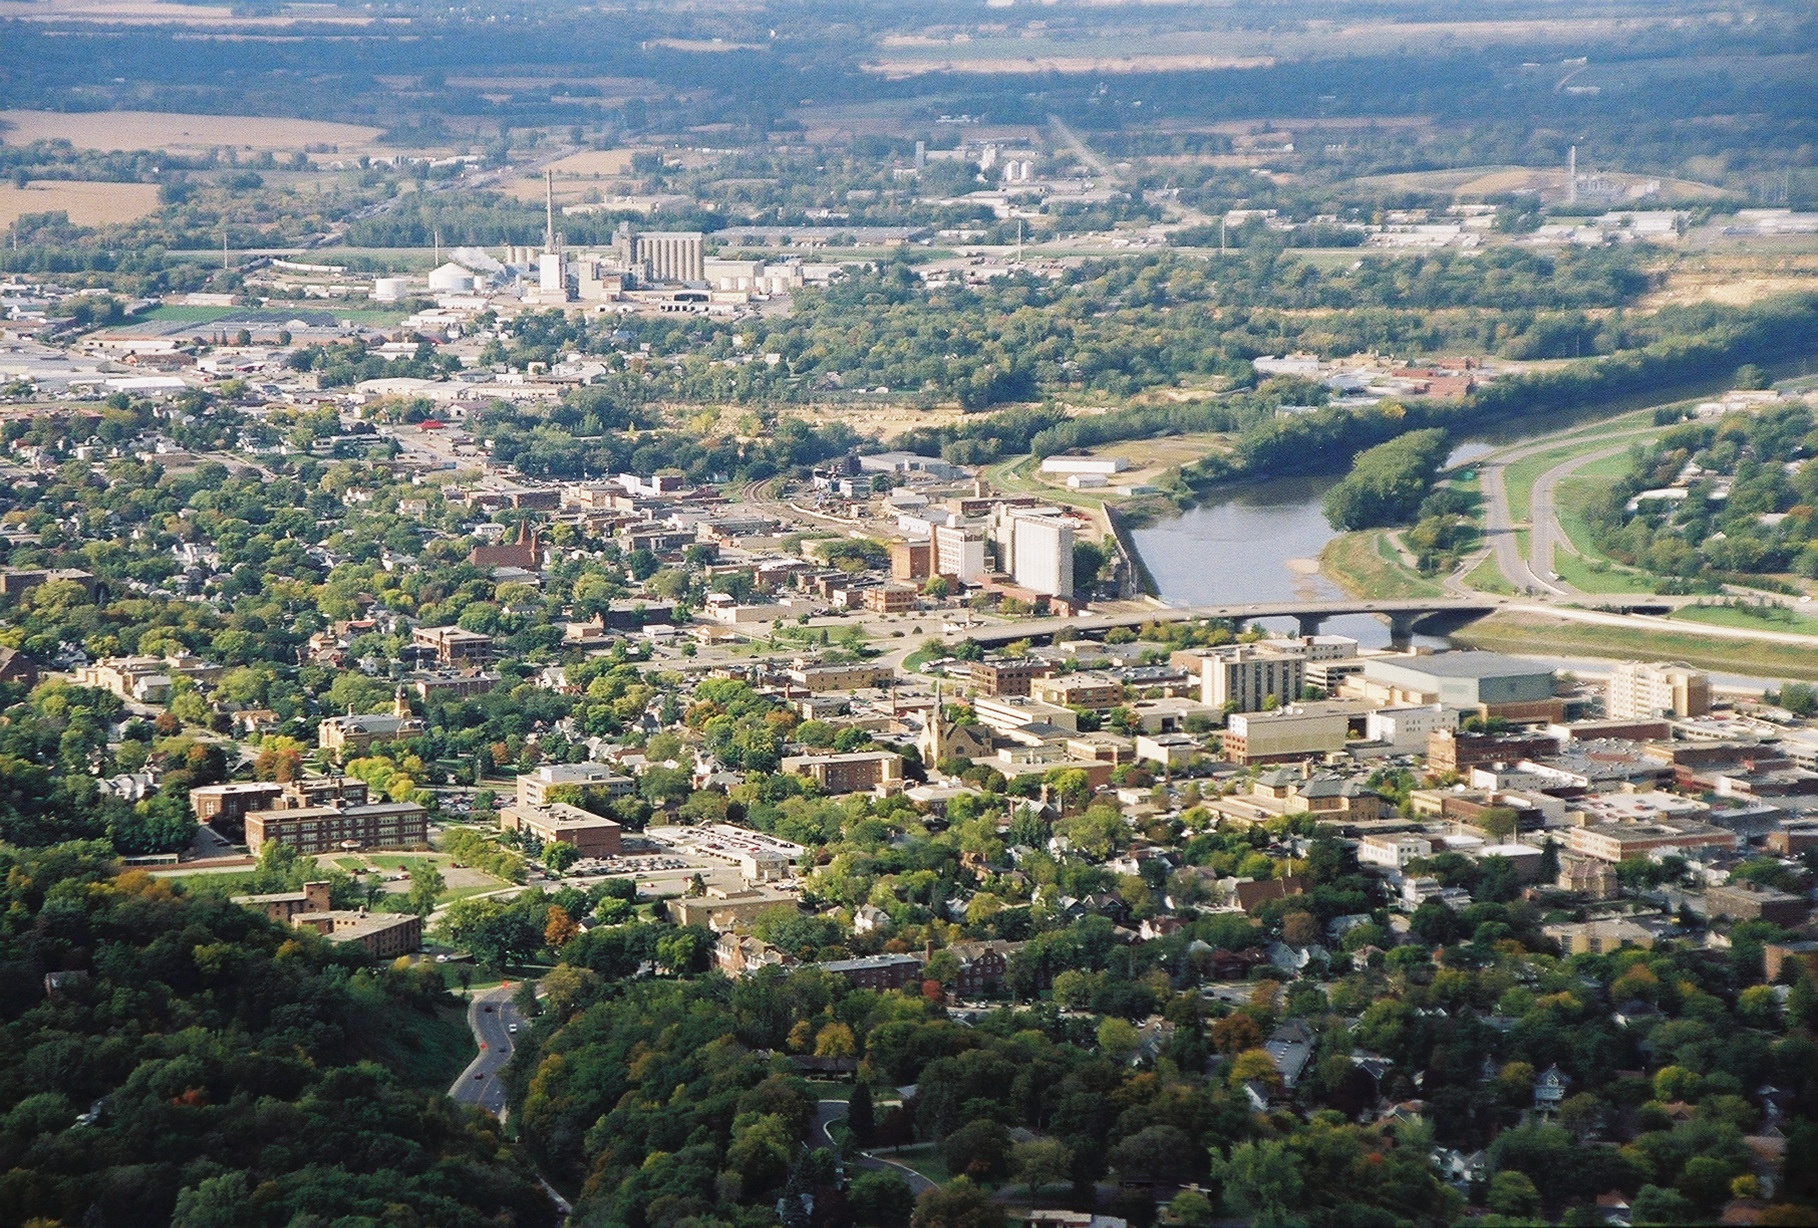 Aerial view of the City of Mankato